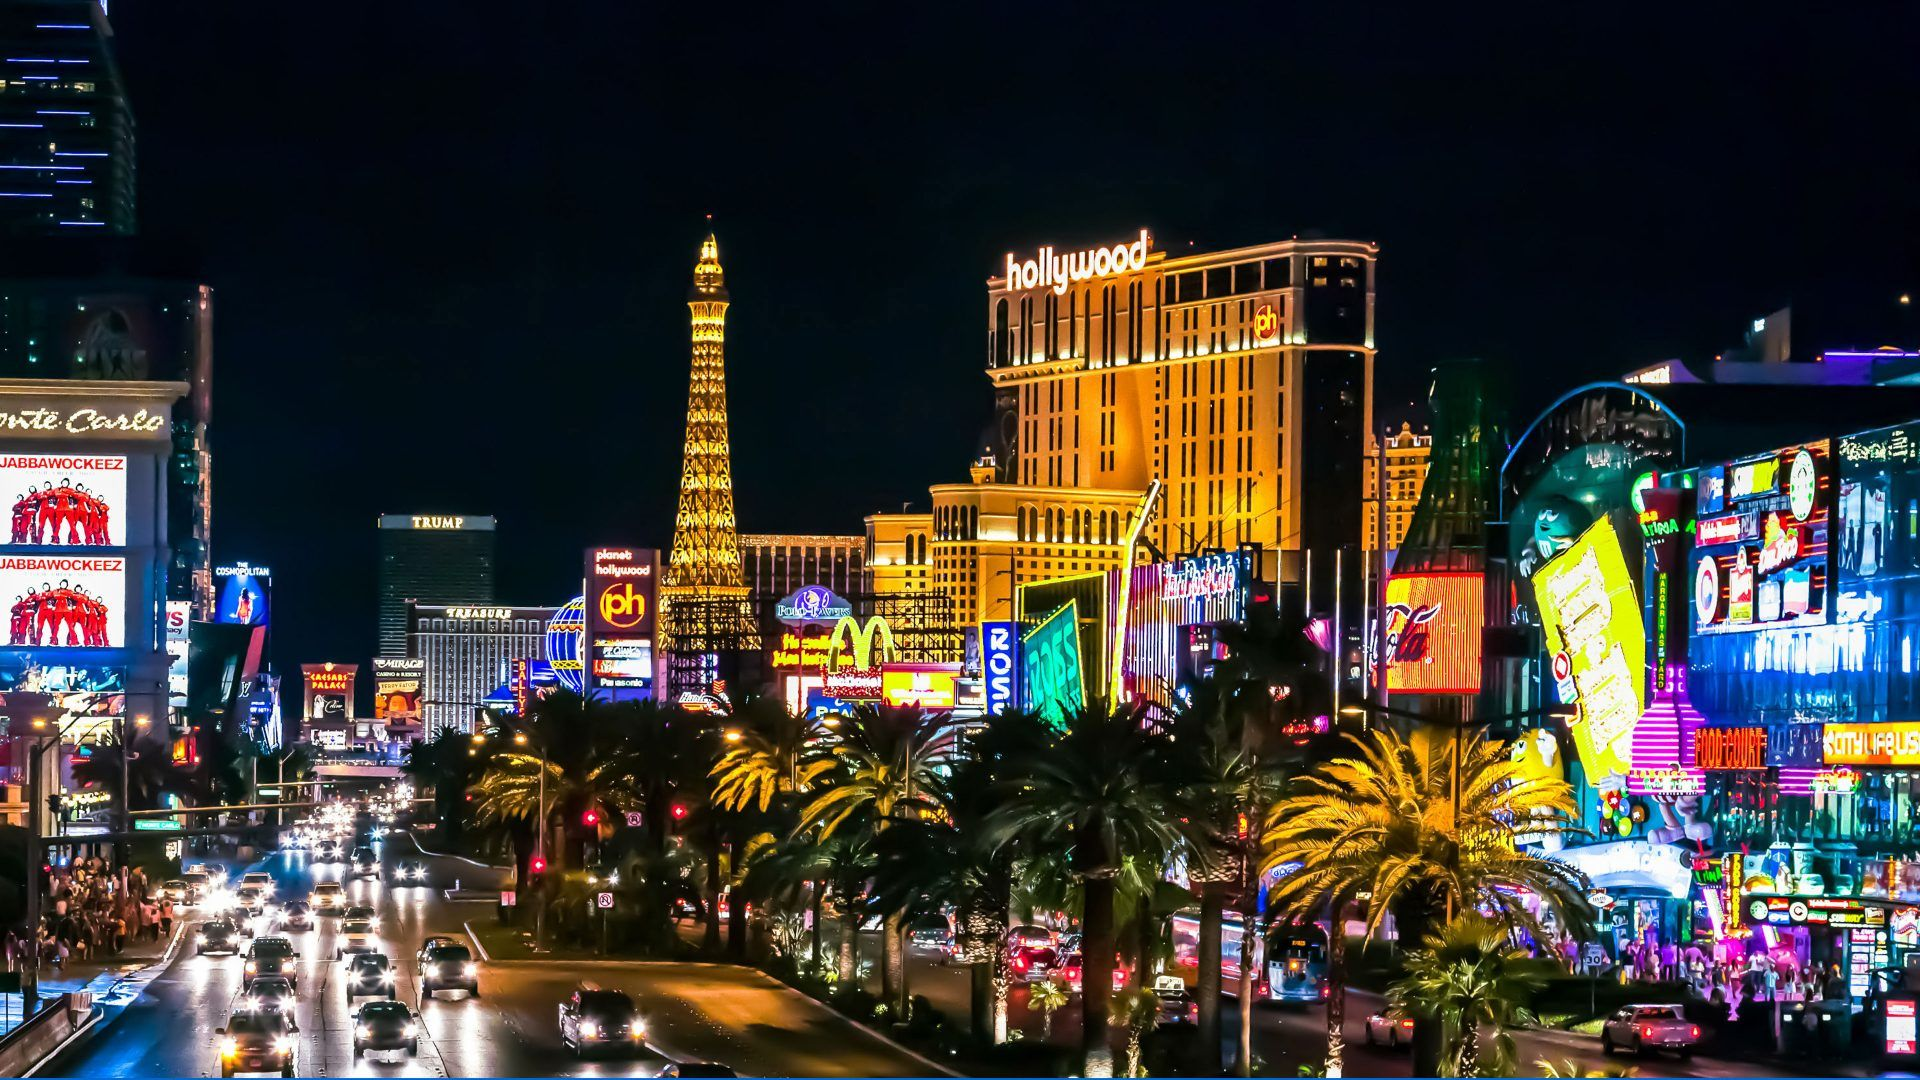 Las Vegas Wallpaper For Android Click Wallpapers Las Vegas Trip Las Vegas Travel Guide Las Vegas